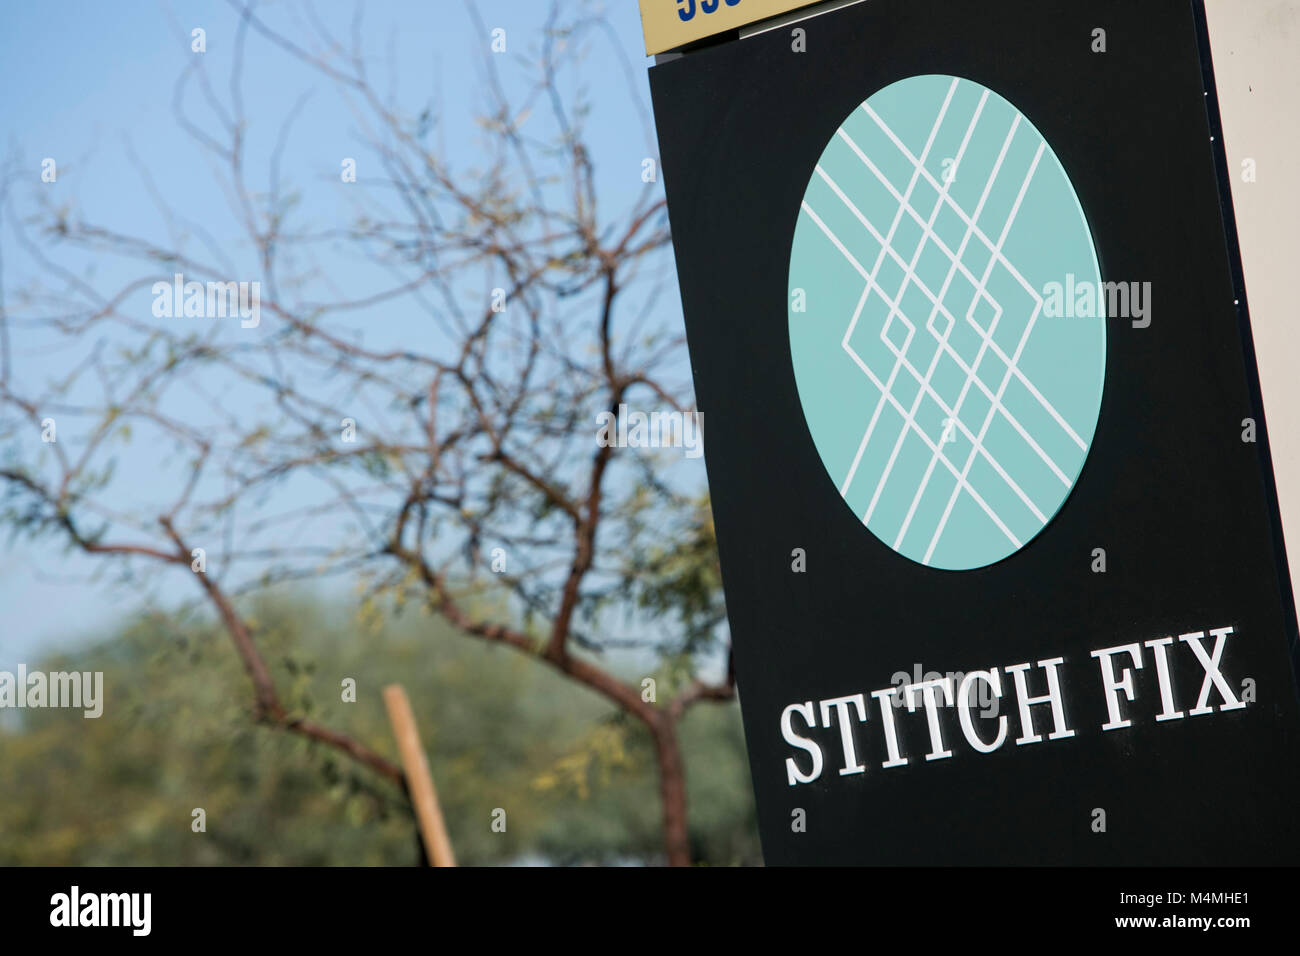 A logo sign outside of a facility occupied by Stitch Fix in Phoenix, Arizona, on February 3, 2018. - Stock Image